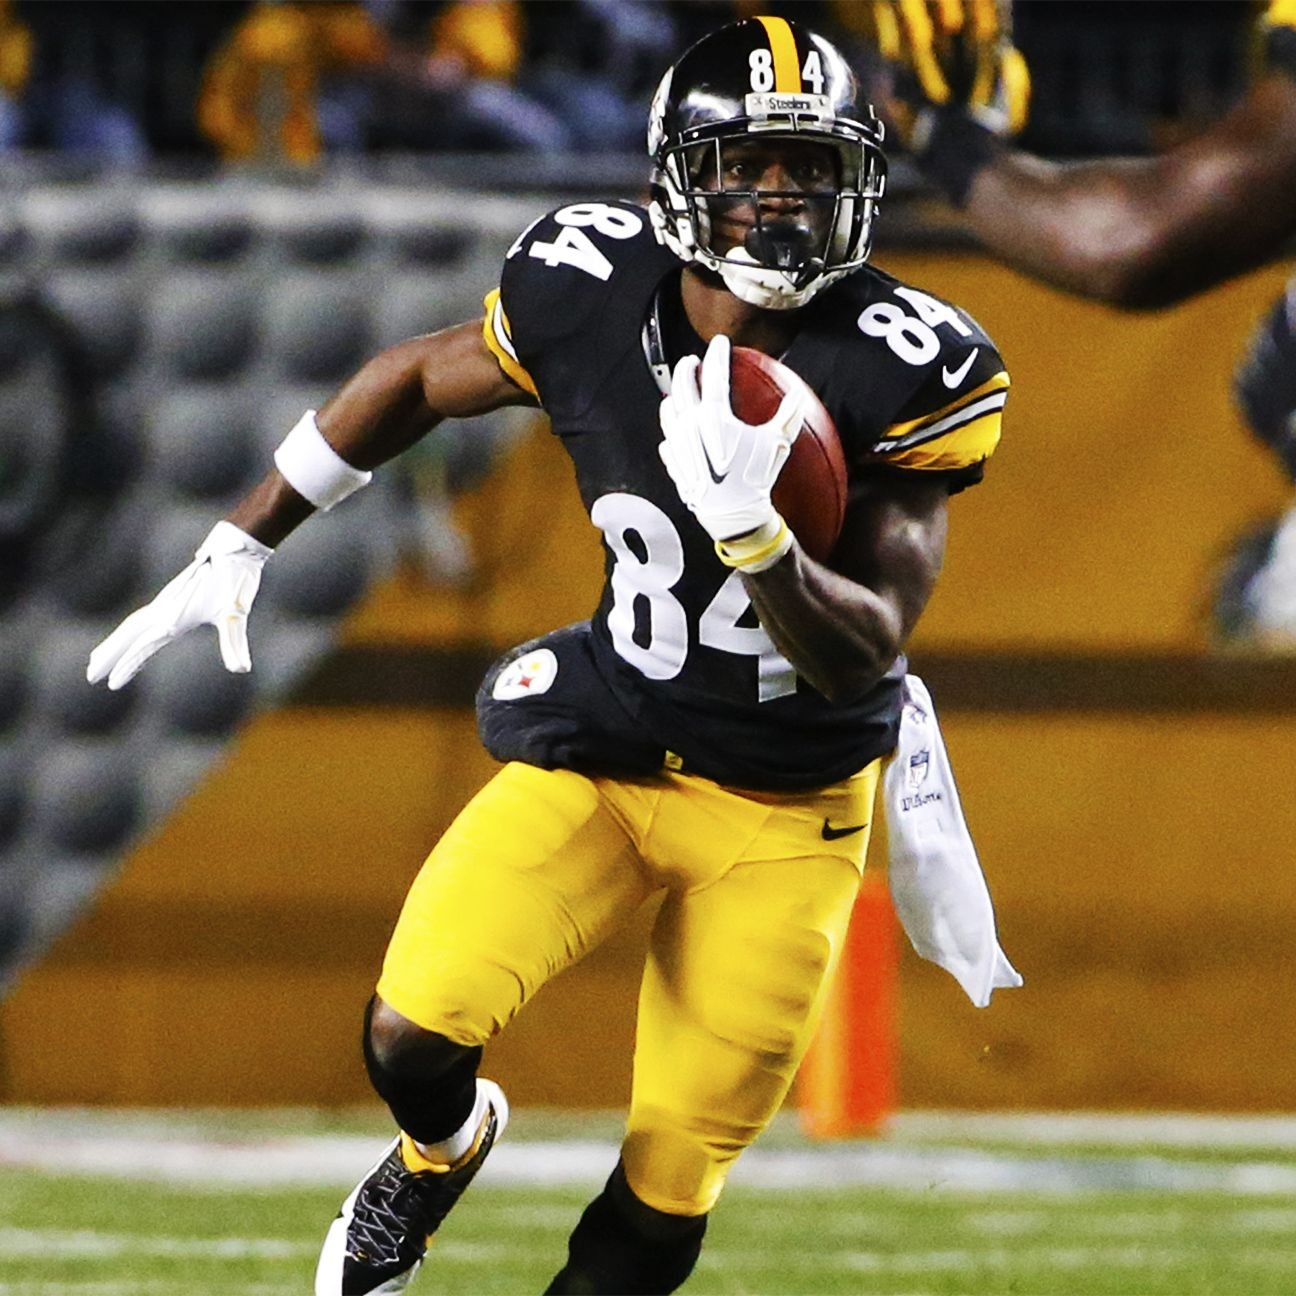 Pittsburgh Steelers Mike Tomlin S New Contract Ushers In: Antonio Brown Could Get Reworked Contract With Steelers